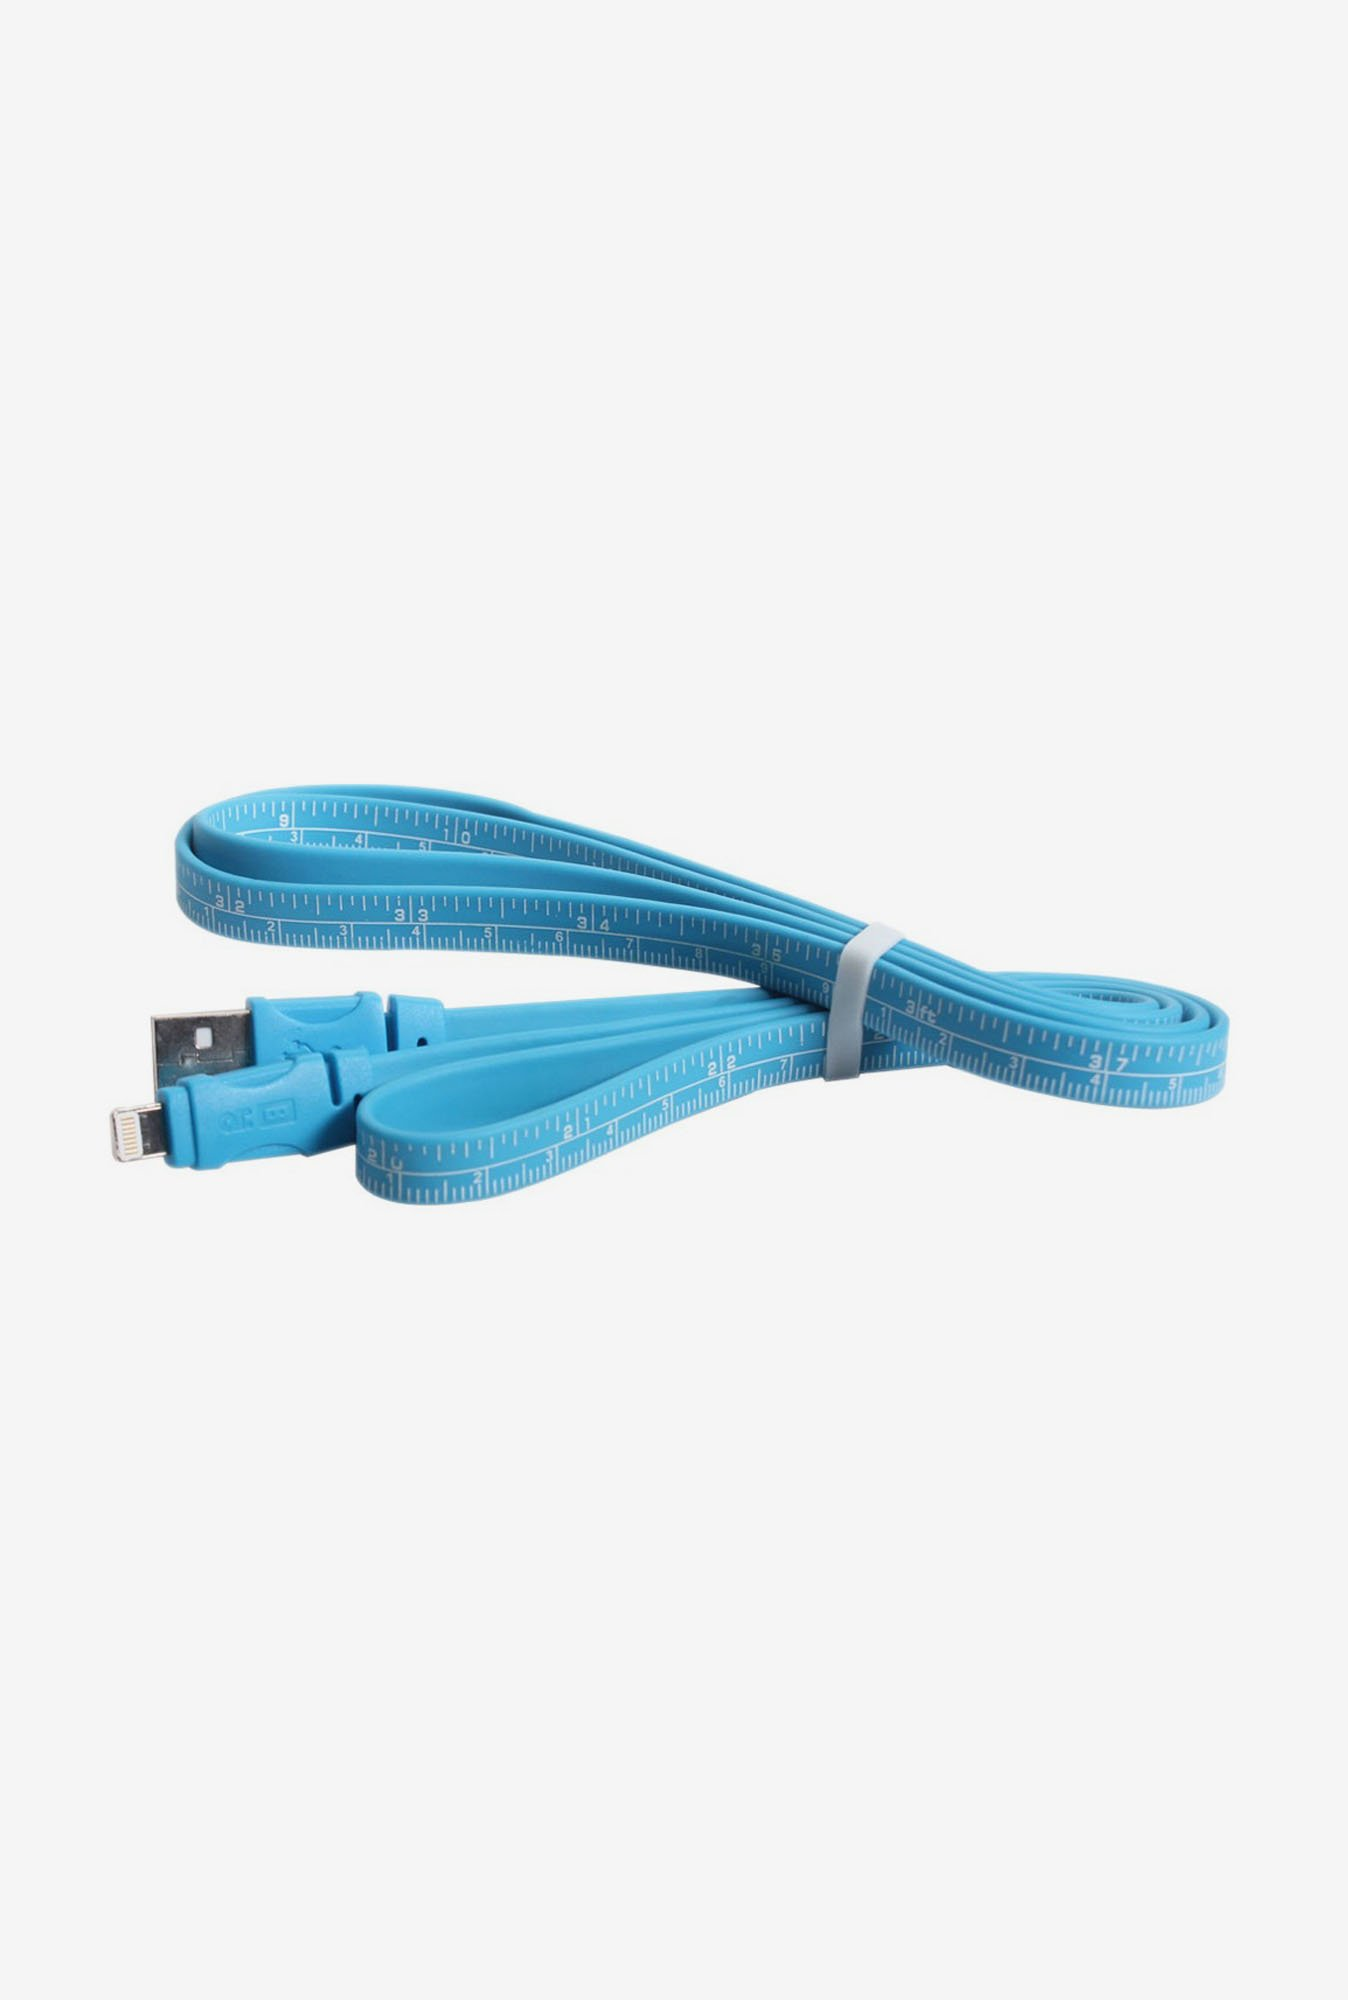 Callmate Data & Charging Ruler Cable for IPhone 5 Blue